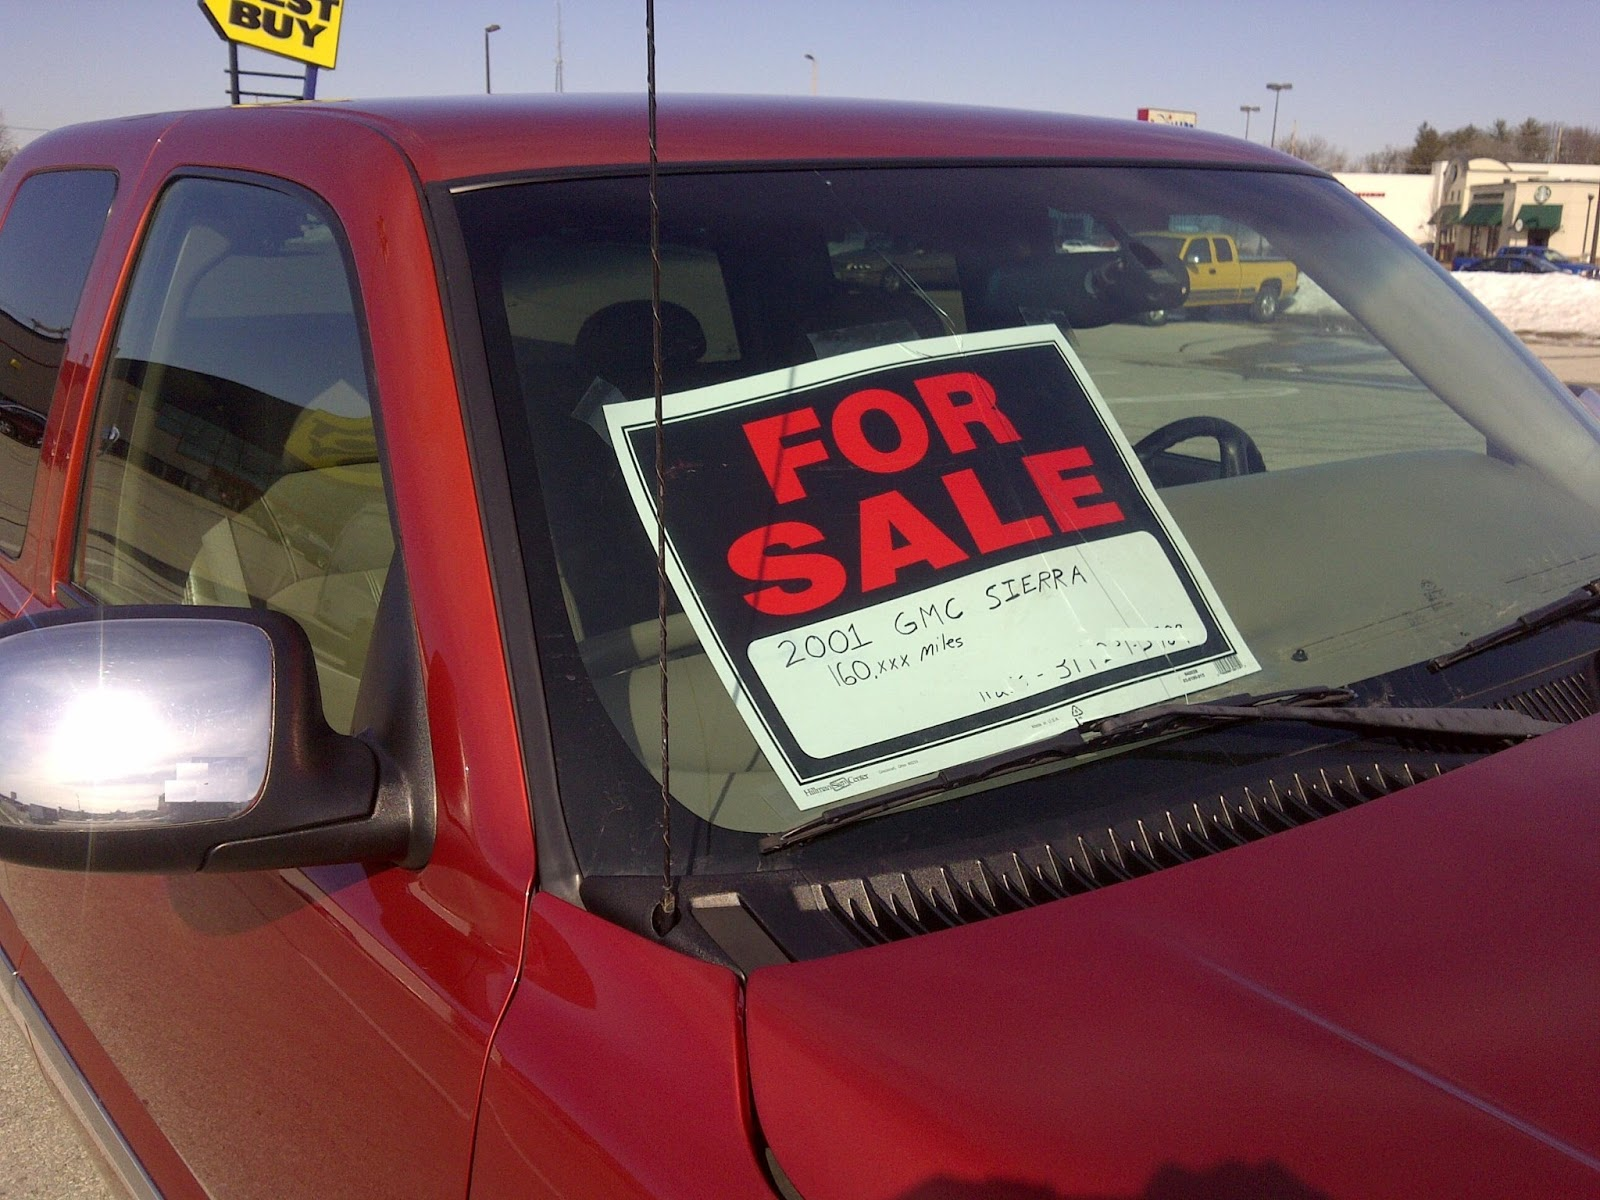 Truck with for sale sign on windshield